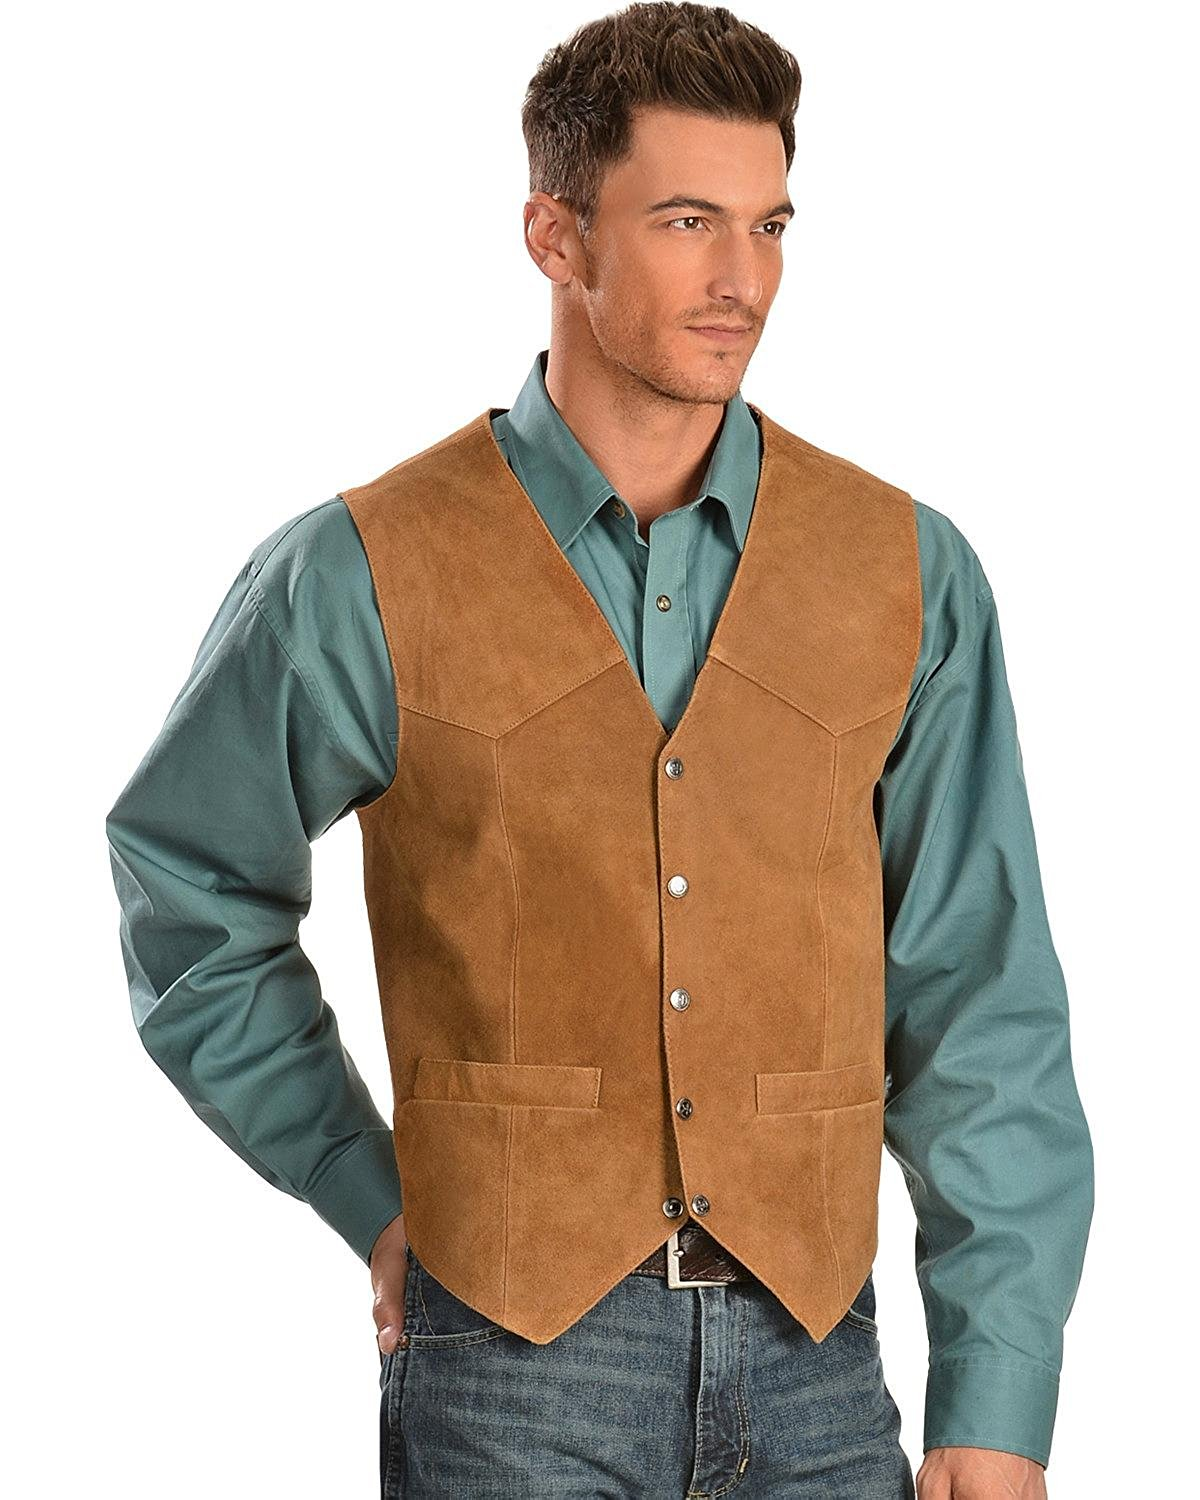 2002-67 Scully Boys Boar Suede Vest